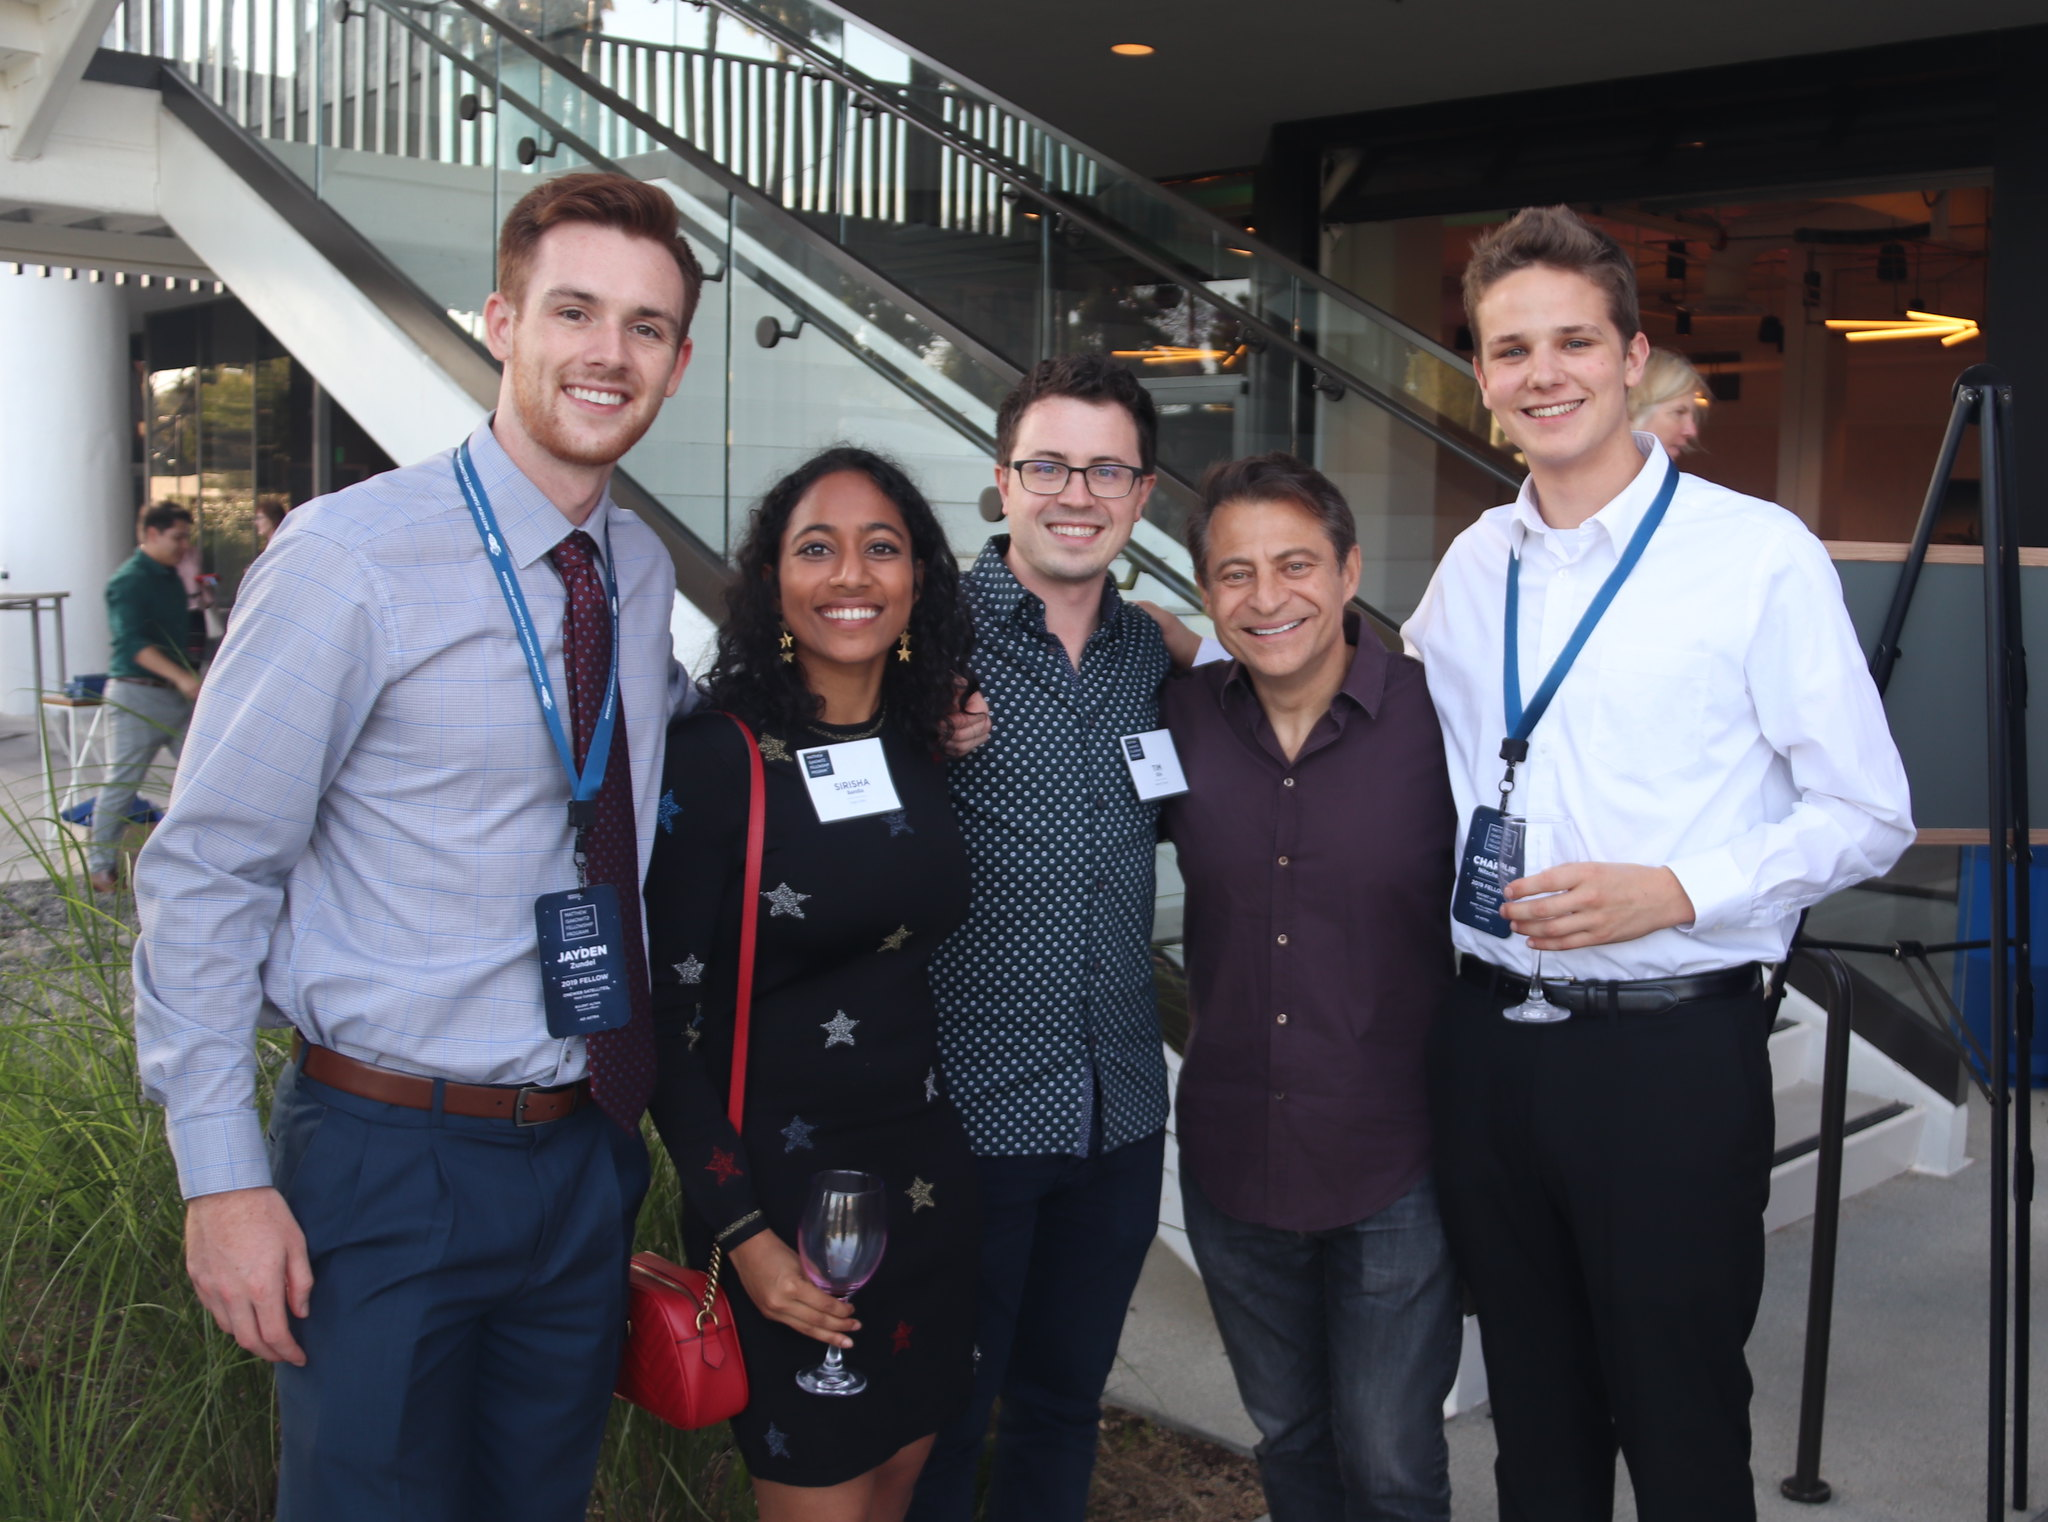 Fellows with Sirisha Bandla (MIFP Team Member; Business Development & Government Affairs Manager, Virgin Orbit), Tim Ellis (Co-founder and CEO, Relativity Space), and Peter Diamandis (Founder and Executive Chairman, XPRIZE Foundation).